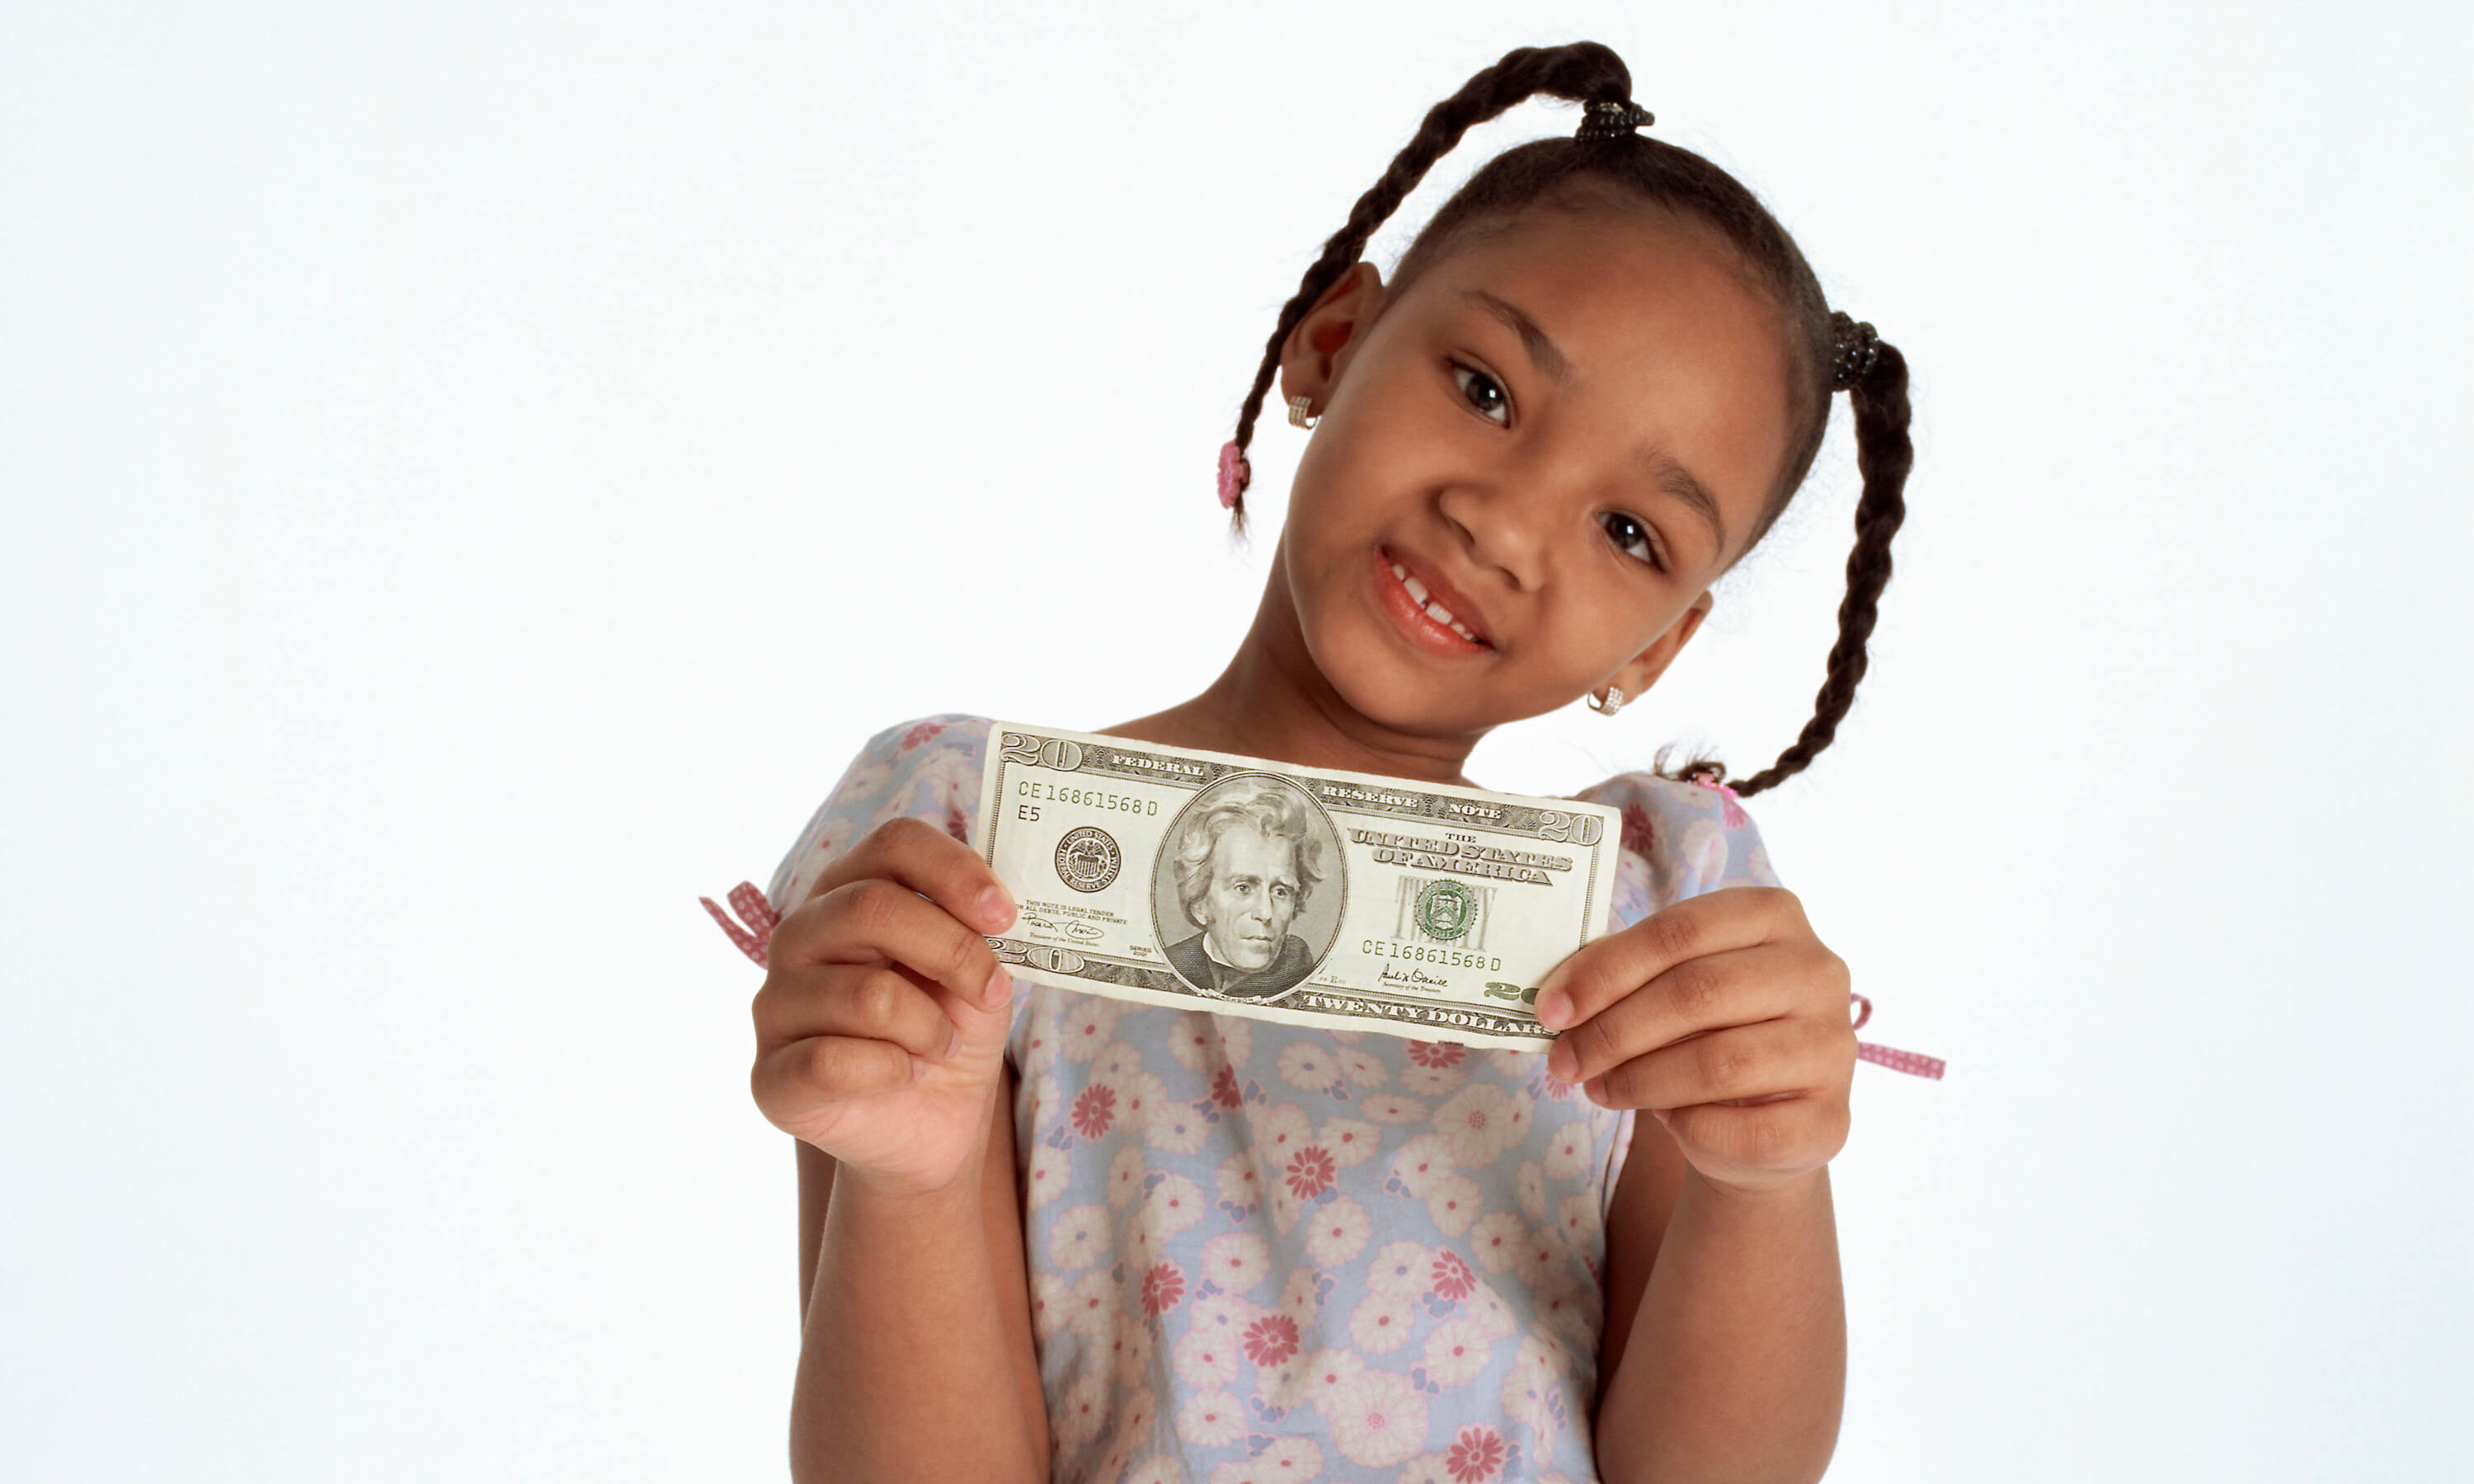 Young girl showing the face of a twenty dollar bill